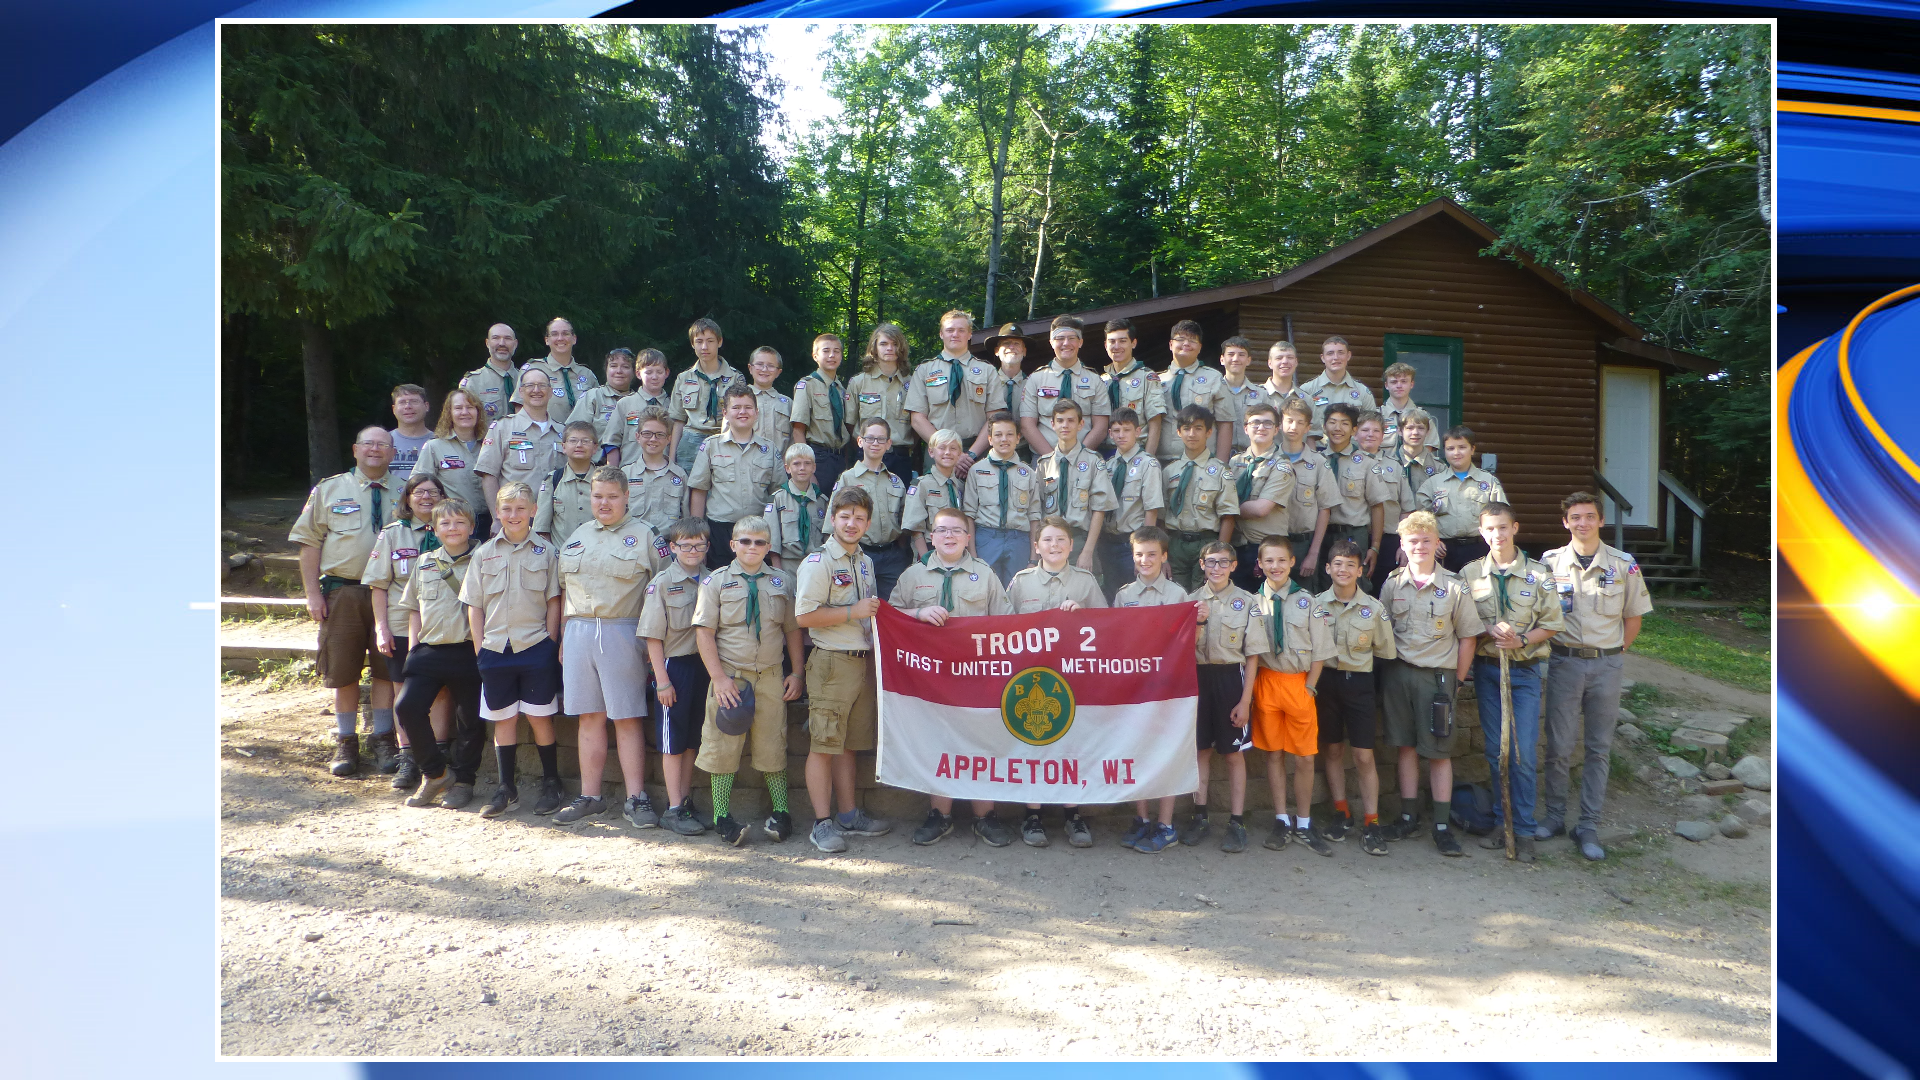 Local Boy Scout Troop preparing to celebrate 100th year